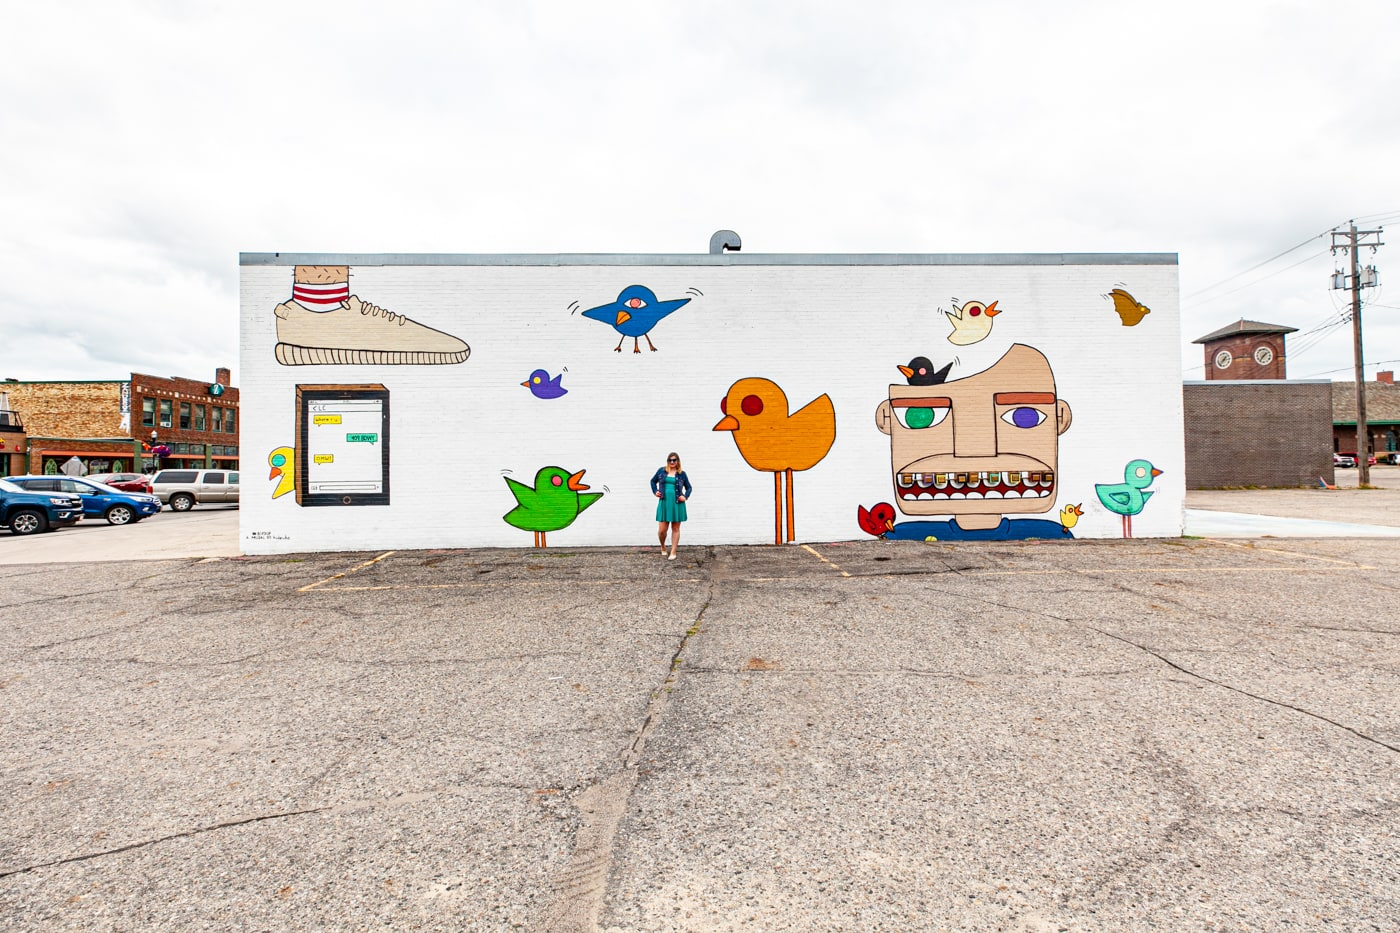 Bird Up Mural in Downtown Fargo, North Dakota by artist Hideuhs | Street Art in Fargo, North Dakota